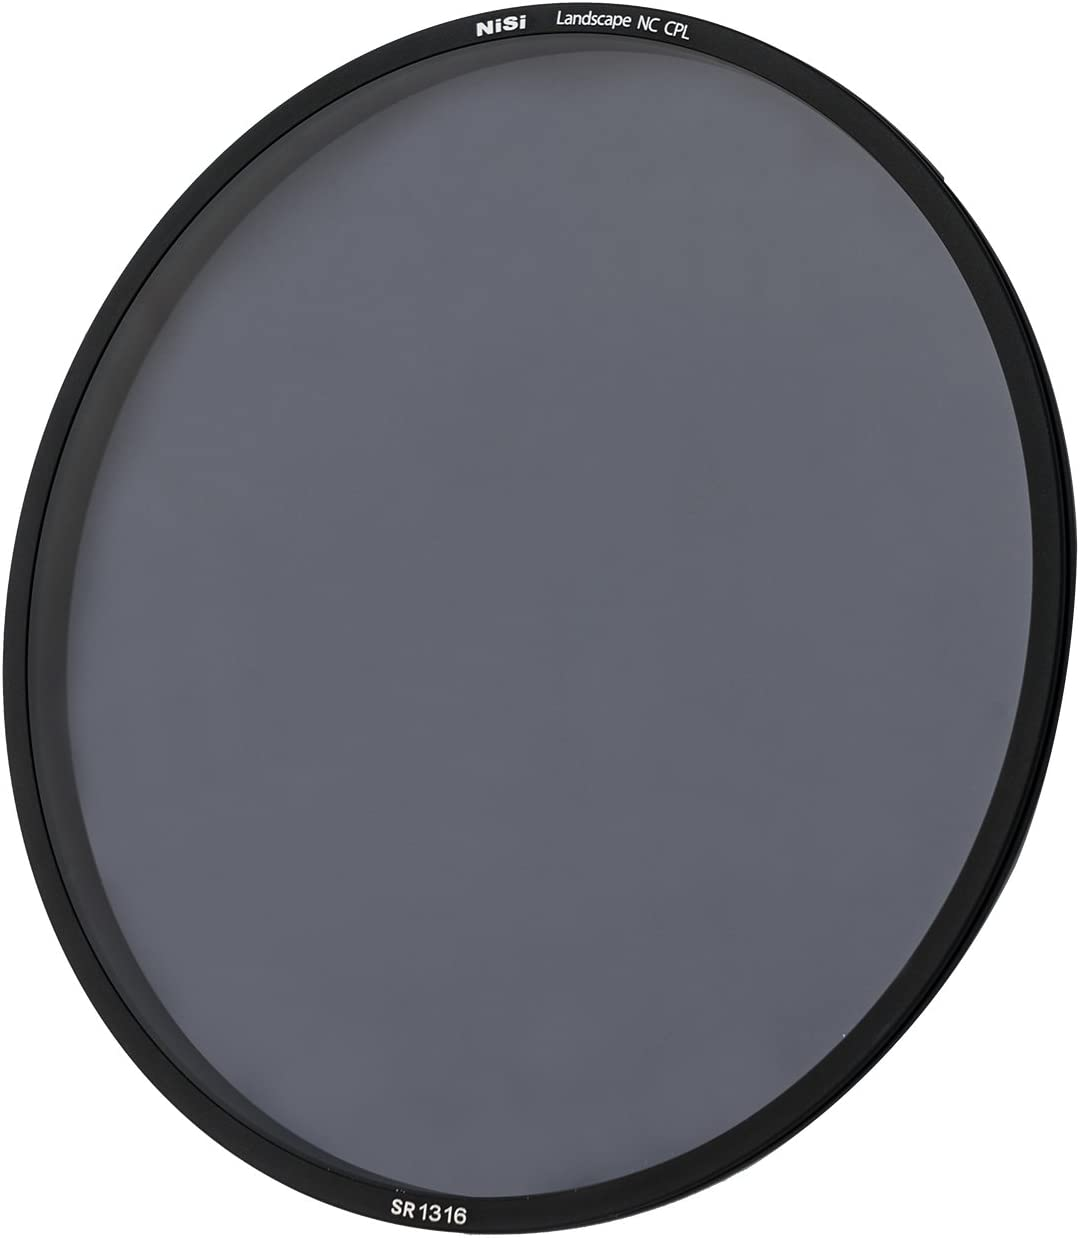 NiSi Round Circular Landscape Polarizer for S5 from Ikan NIP-S5-CPL-EN Black